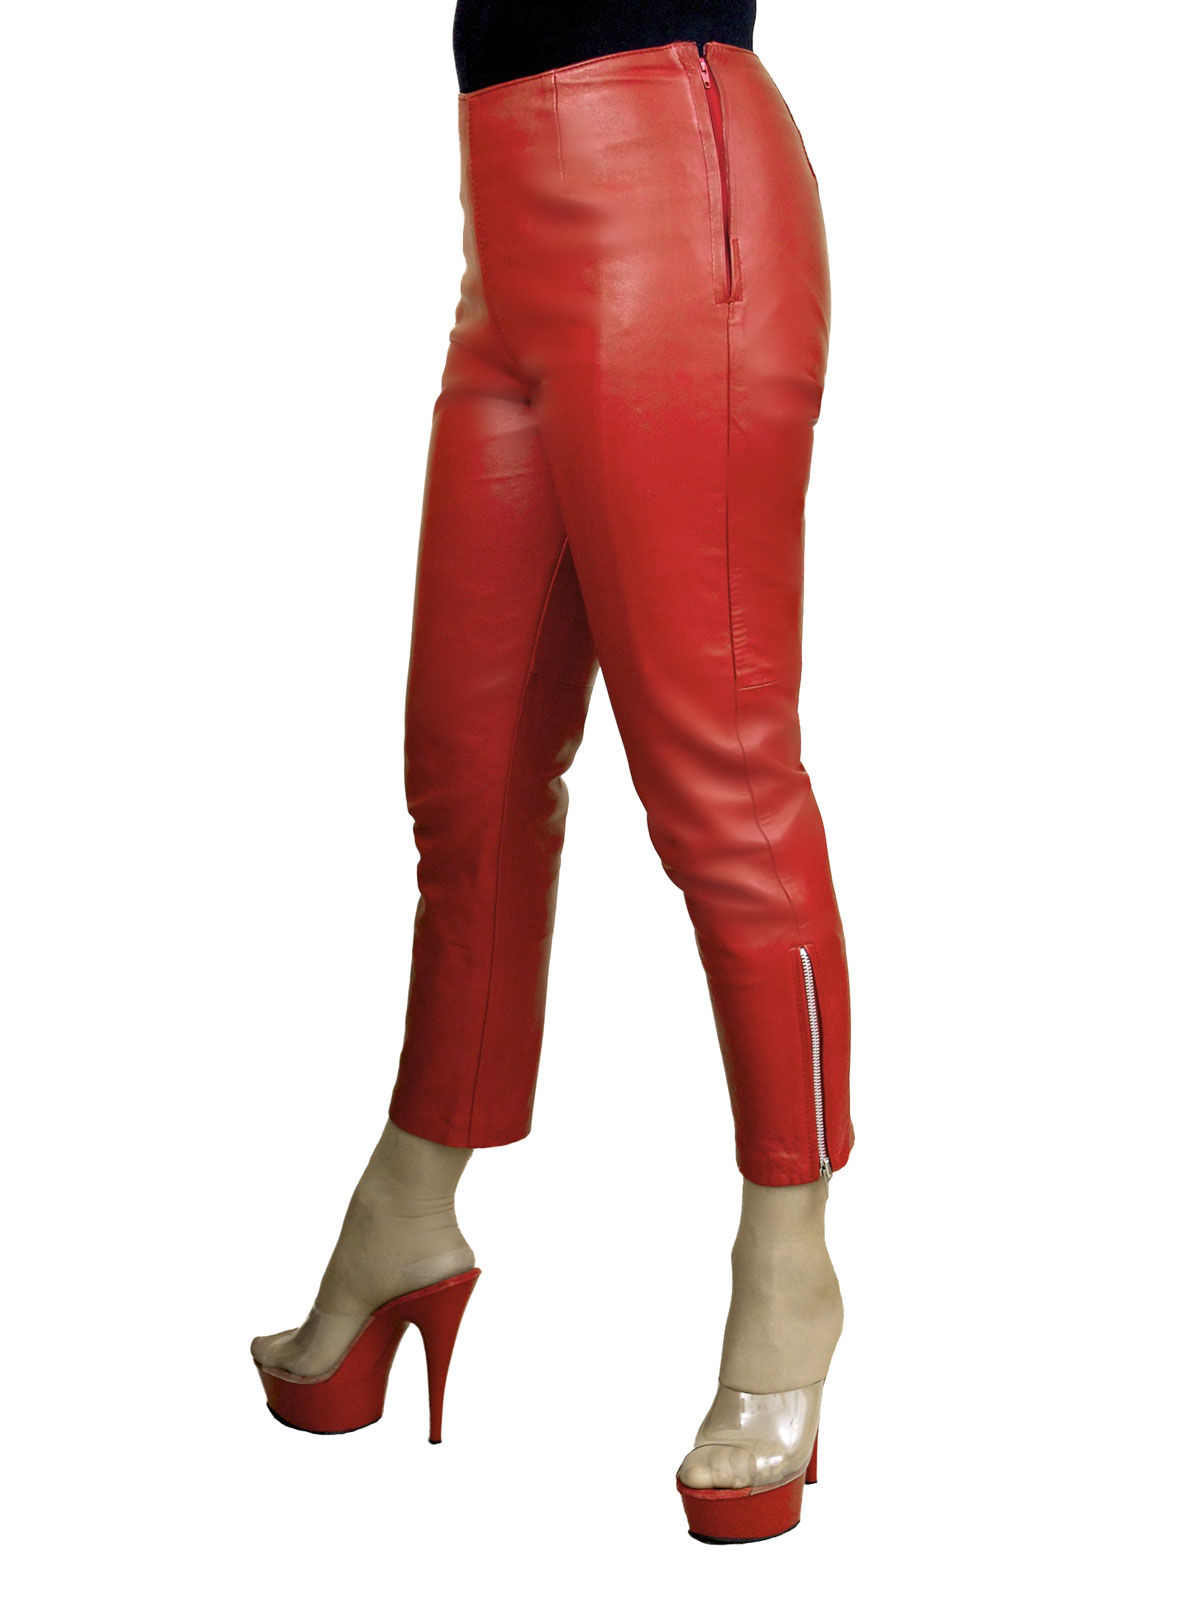 f020474a26a37 Womens Tight Leather Crop Trousers (5 colours) - Tout Ensemble